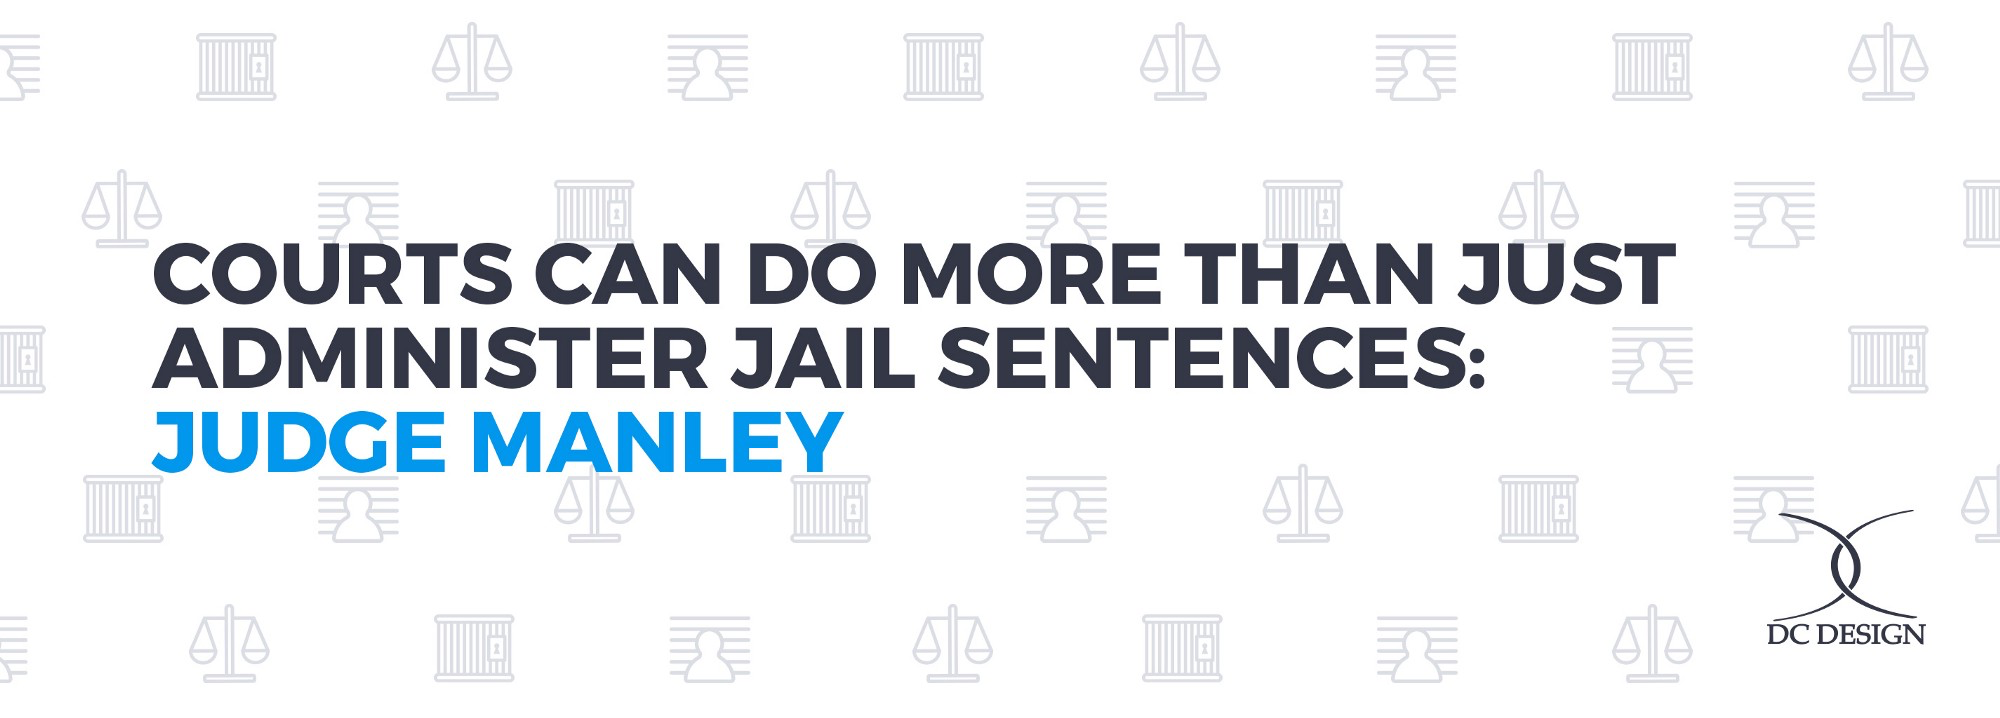 Courts Can Do More Than Just Administer Jail Sentences